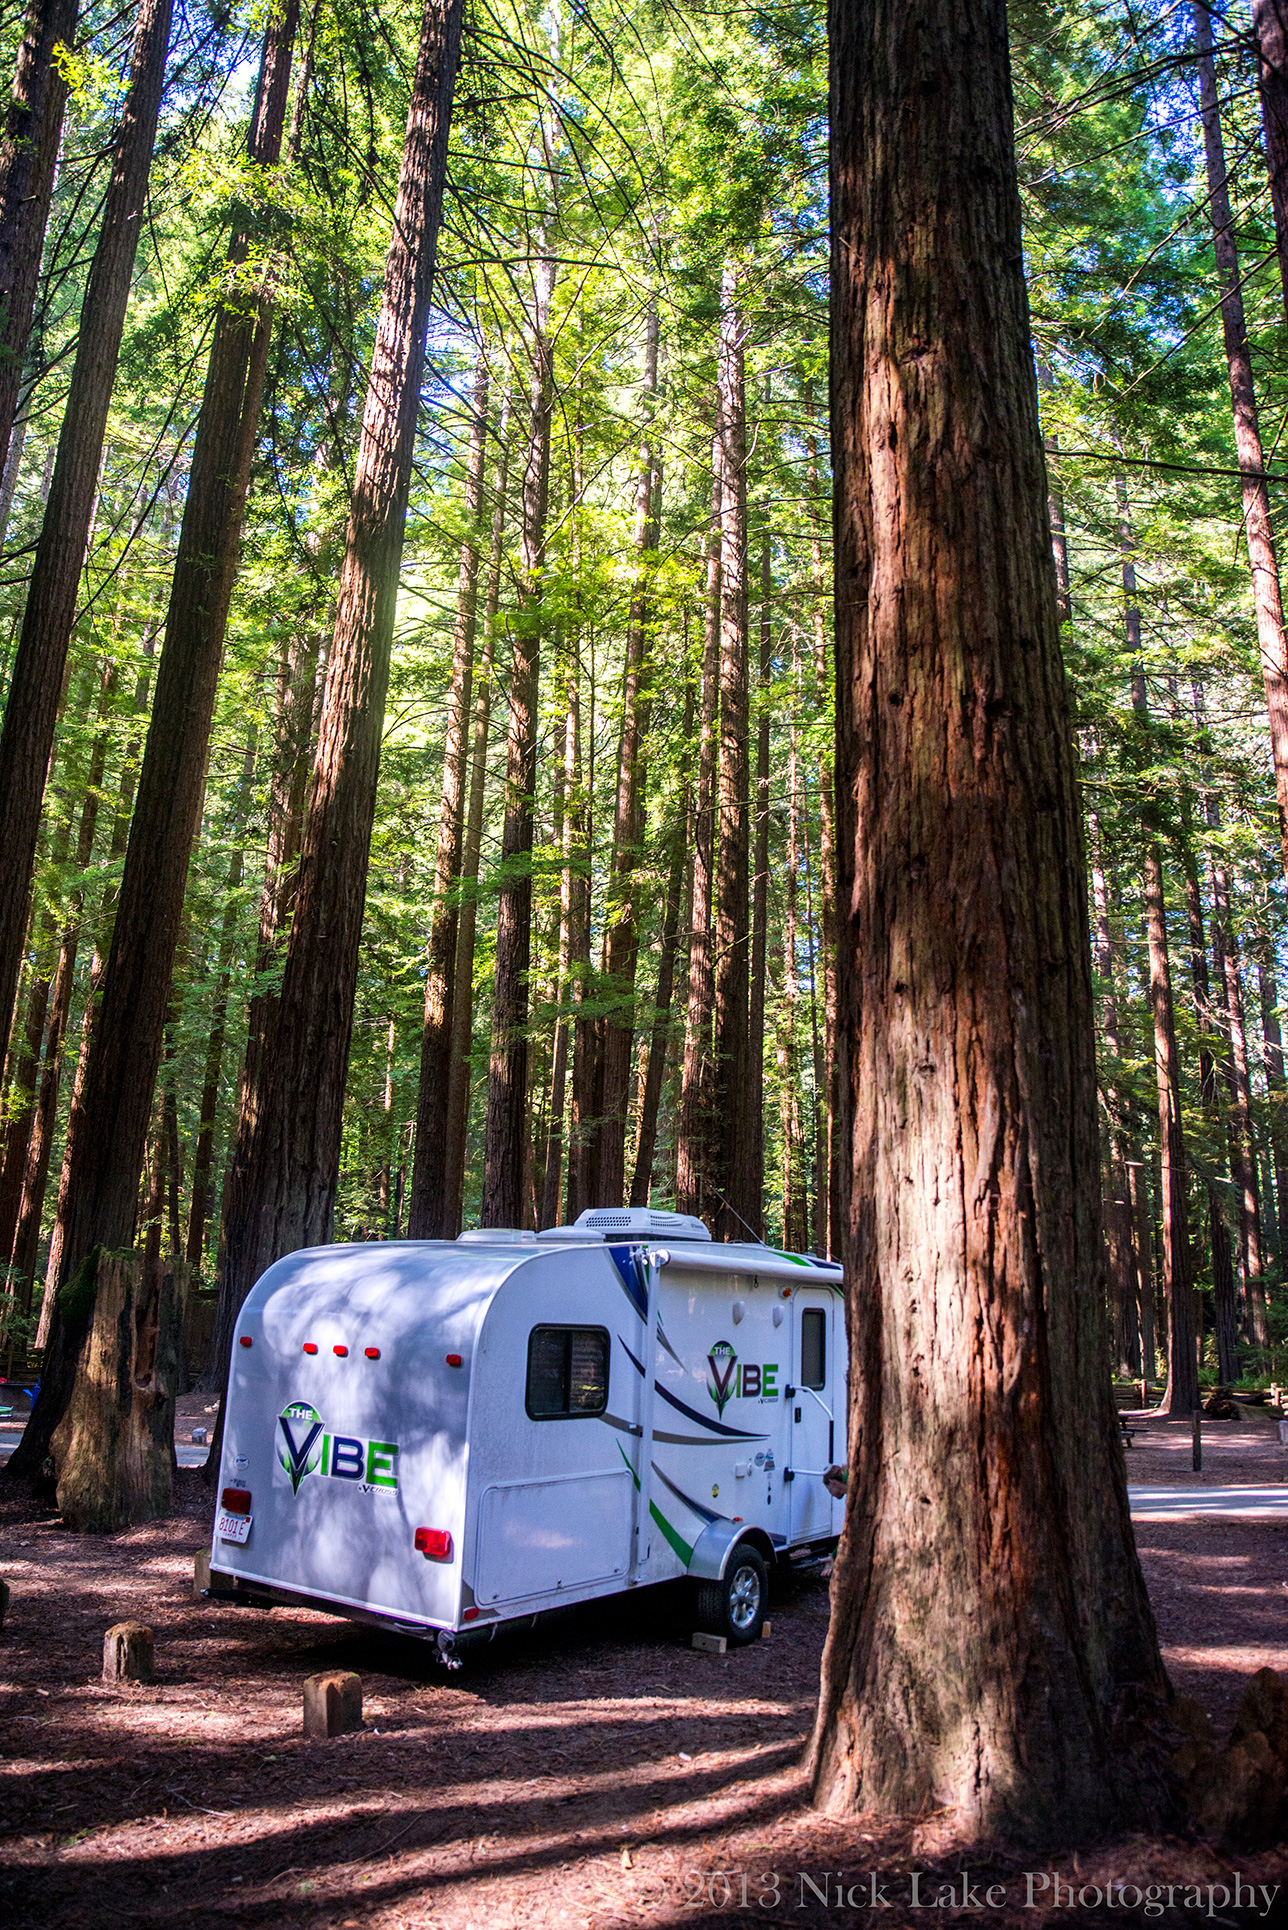 The Vibe rest beneath some of Humboldt Redwoods State Park's trees